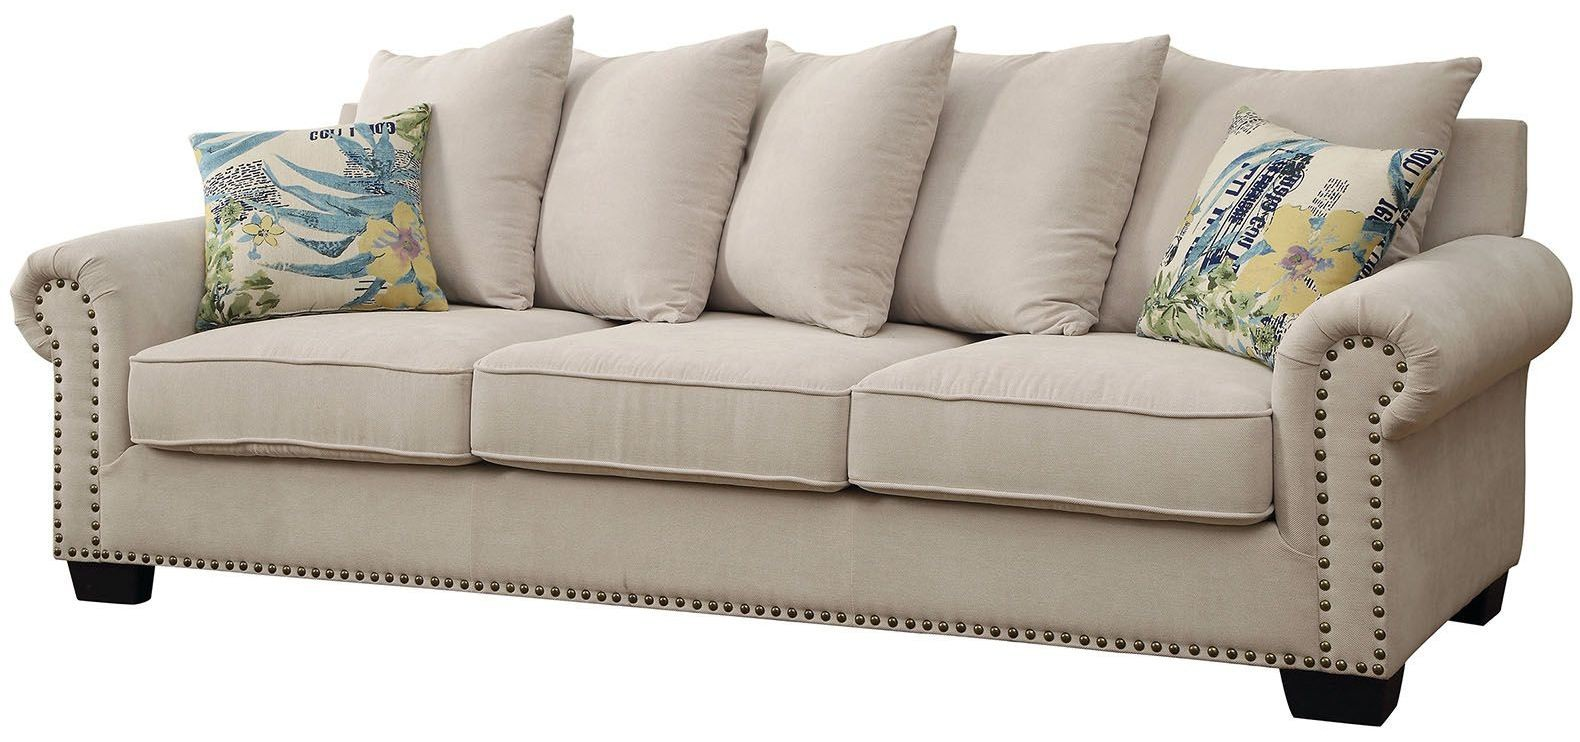 Skyler Ivory Sofa From Furniture Of America Coleman Furniture